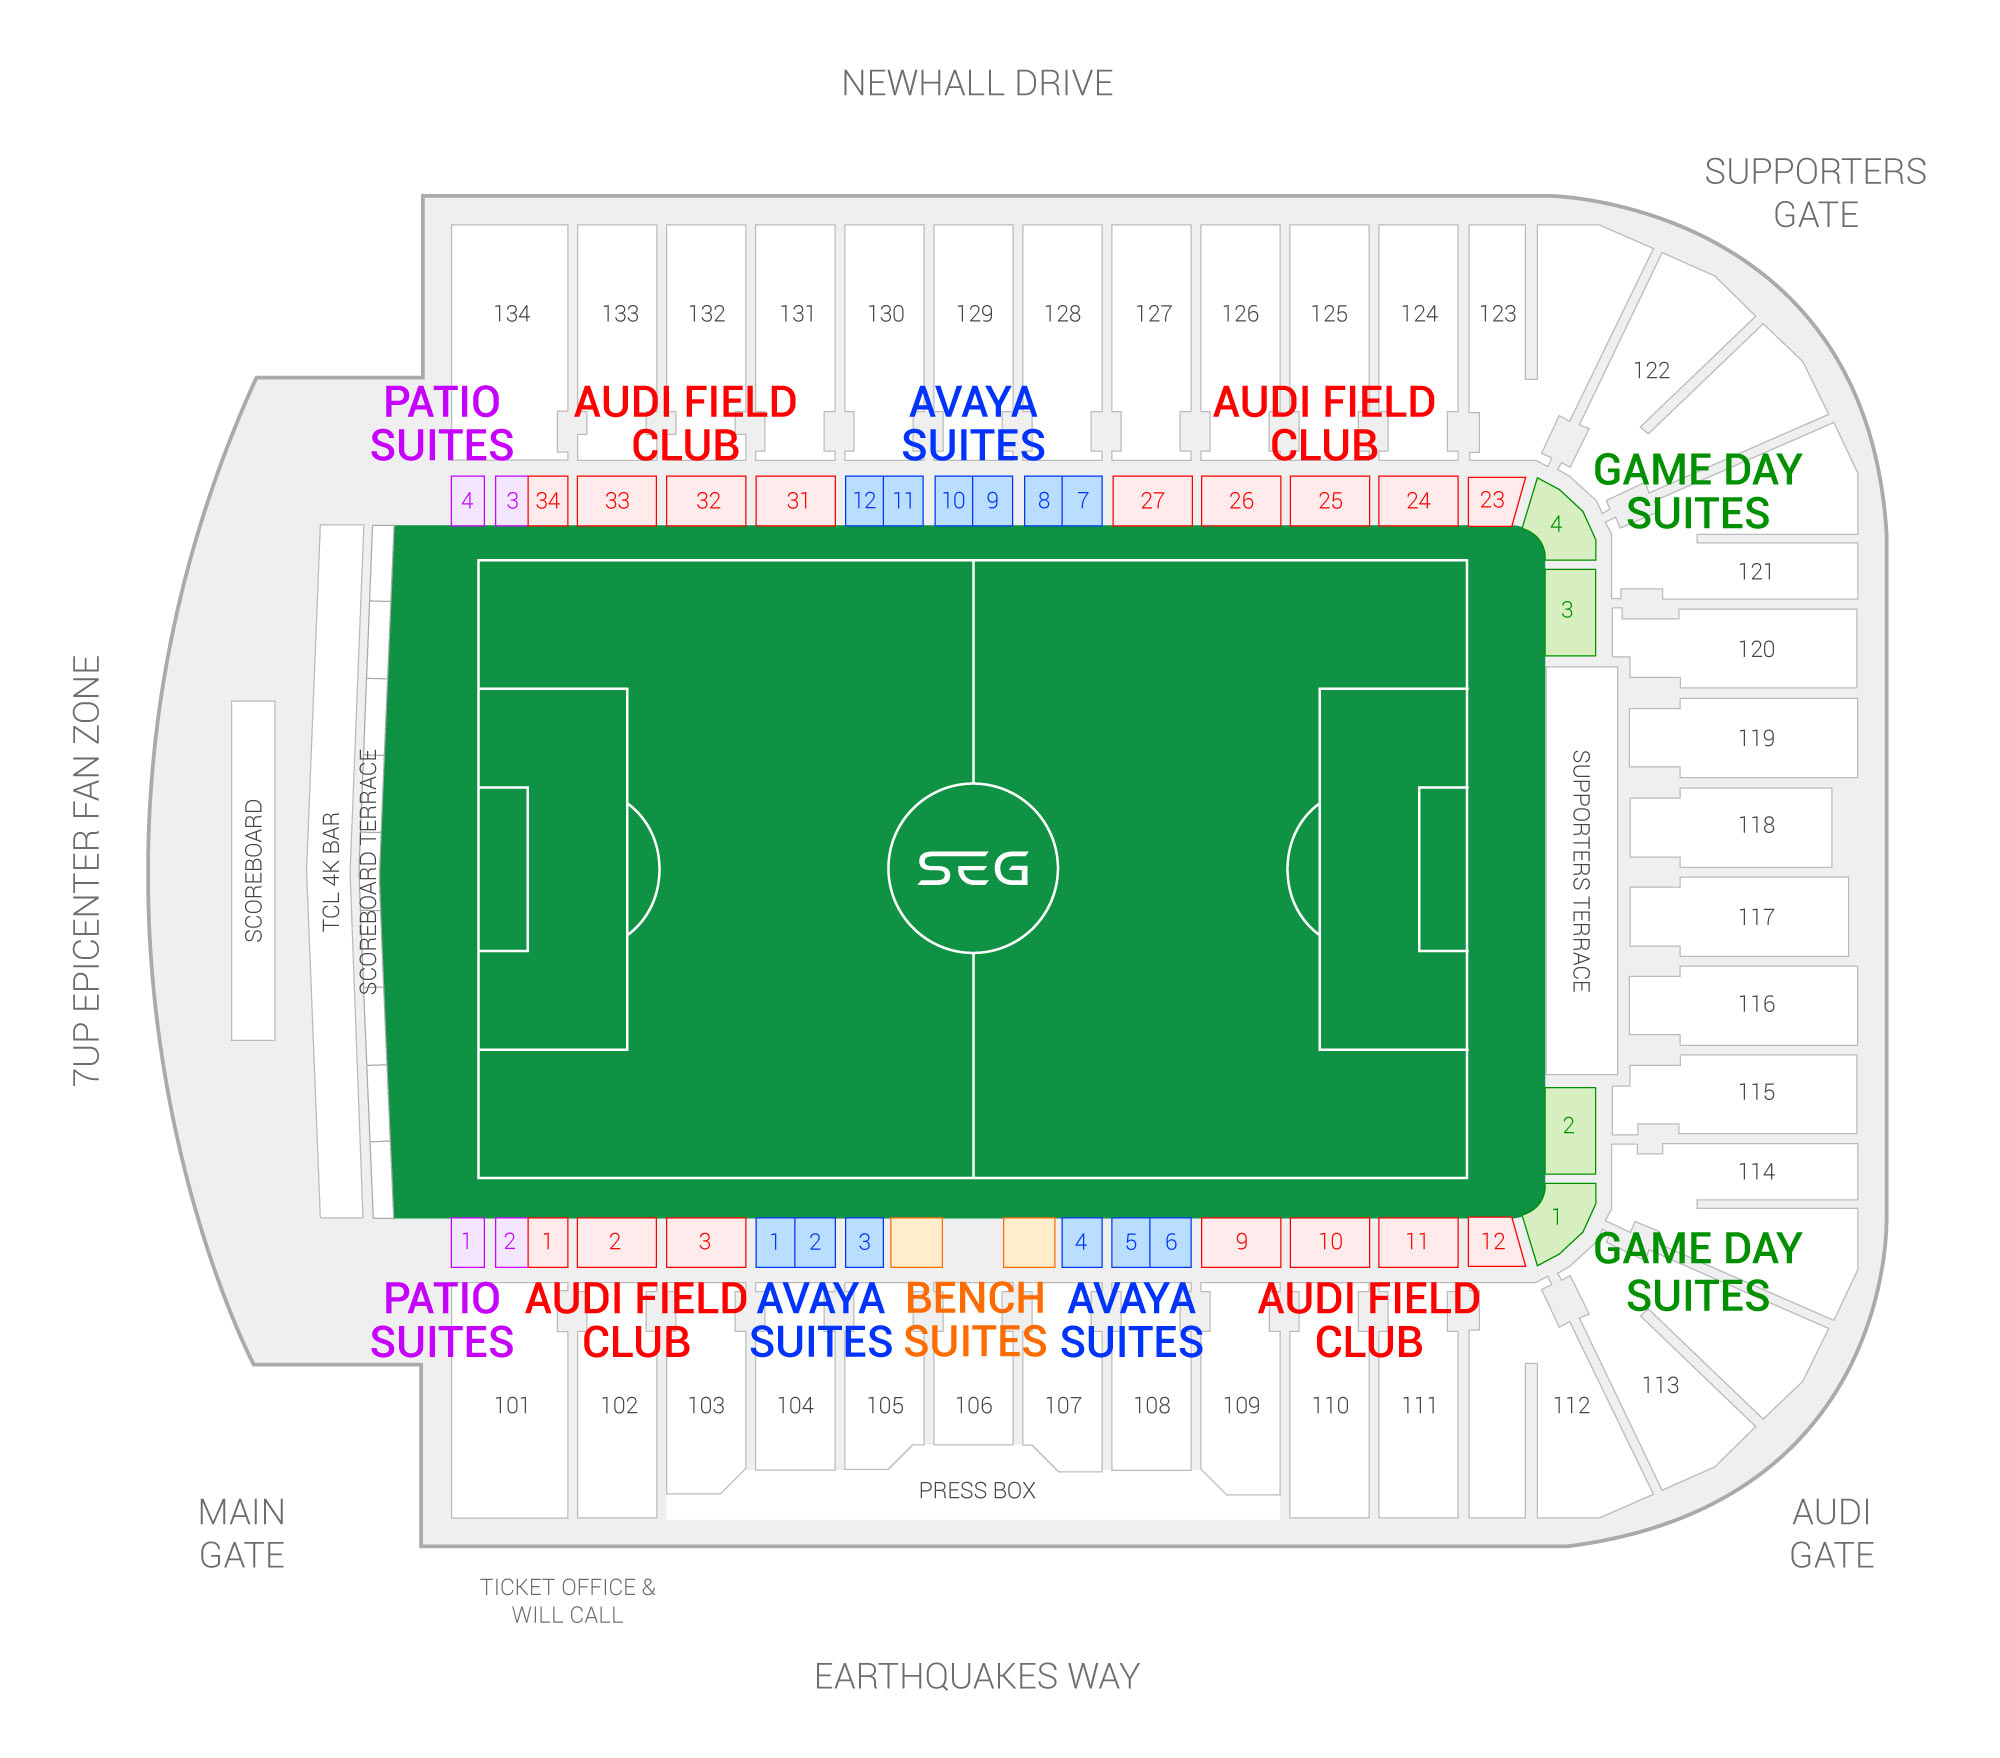 PayPal Park (Formerly Avaya Stadium) / San Jose Earthquakes Suite Map and Seating Chart